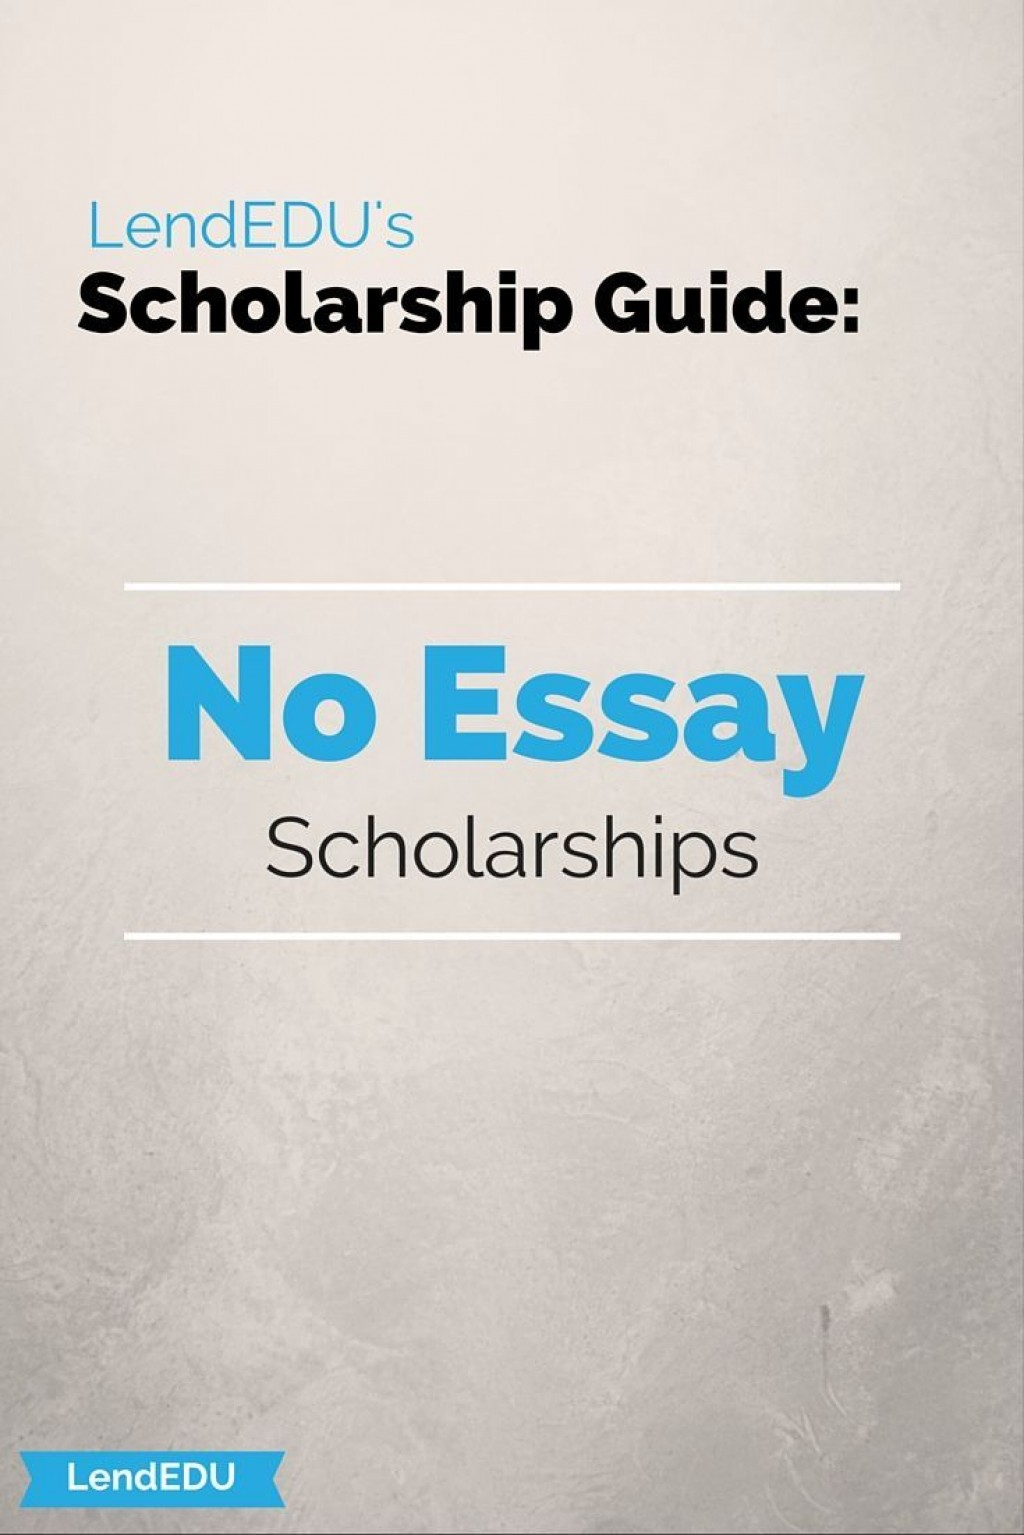 007 Essay Example No Scholarships For High School Rare Seniors 2018 Short Large